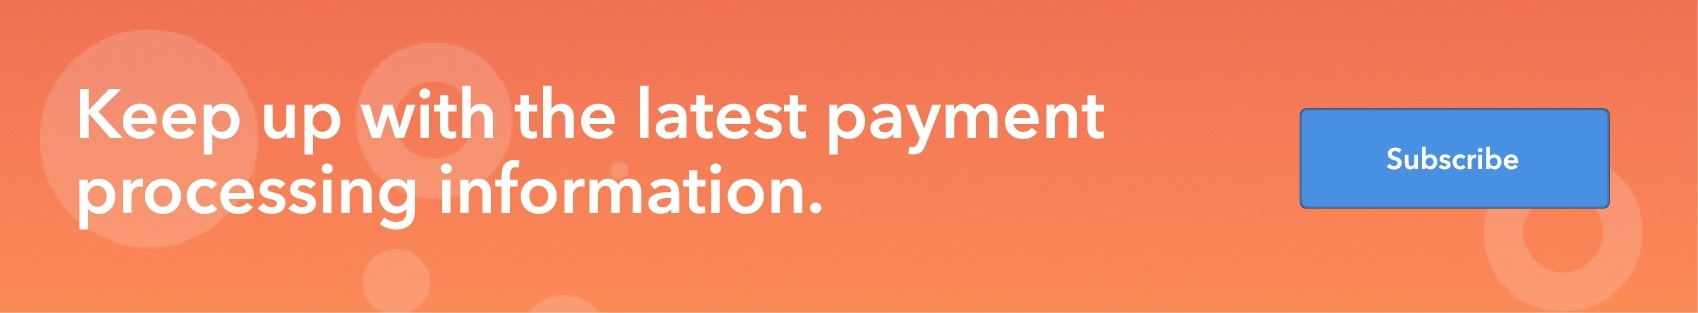 Keep up with the latest payment processing information. Subscribe.